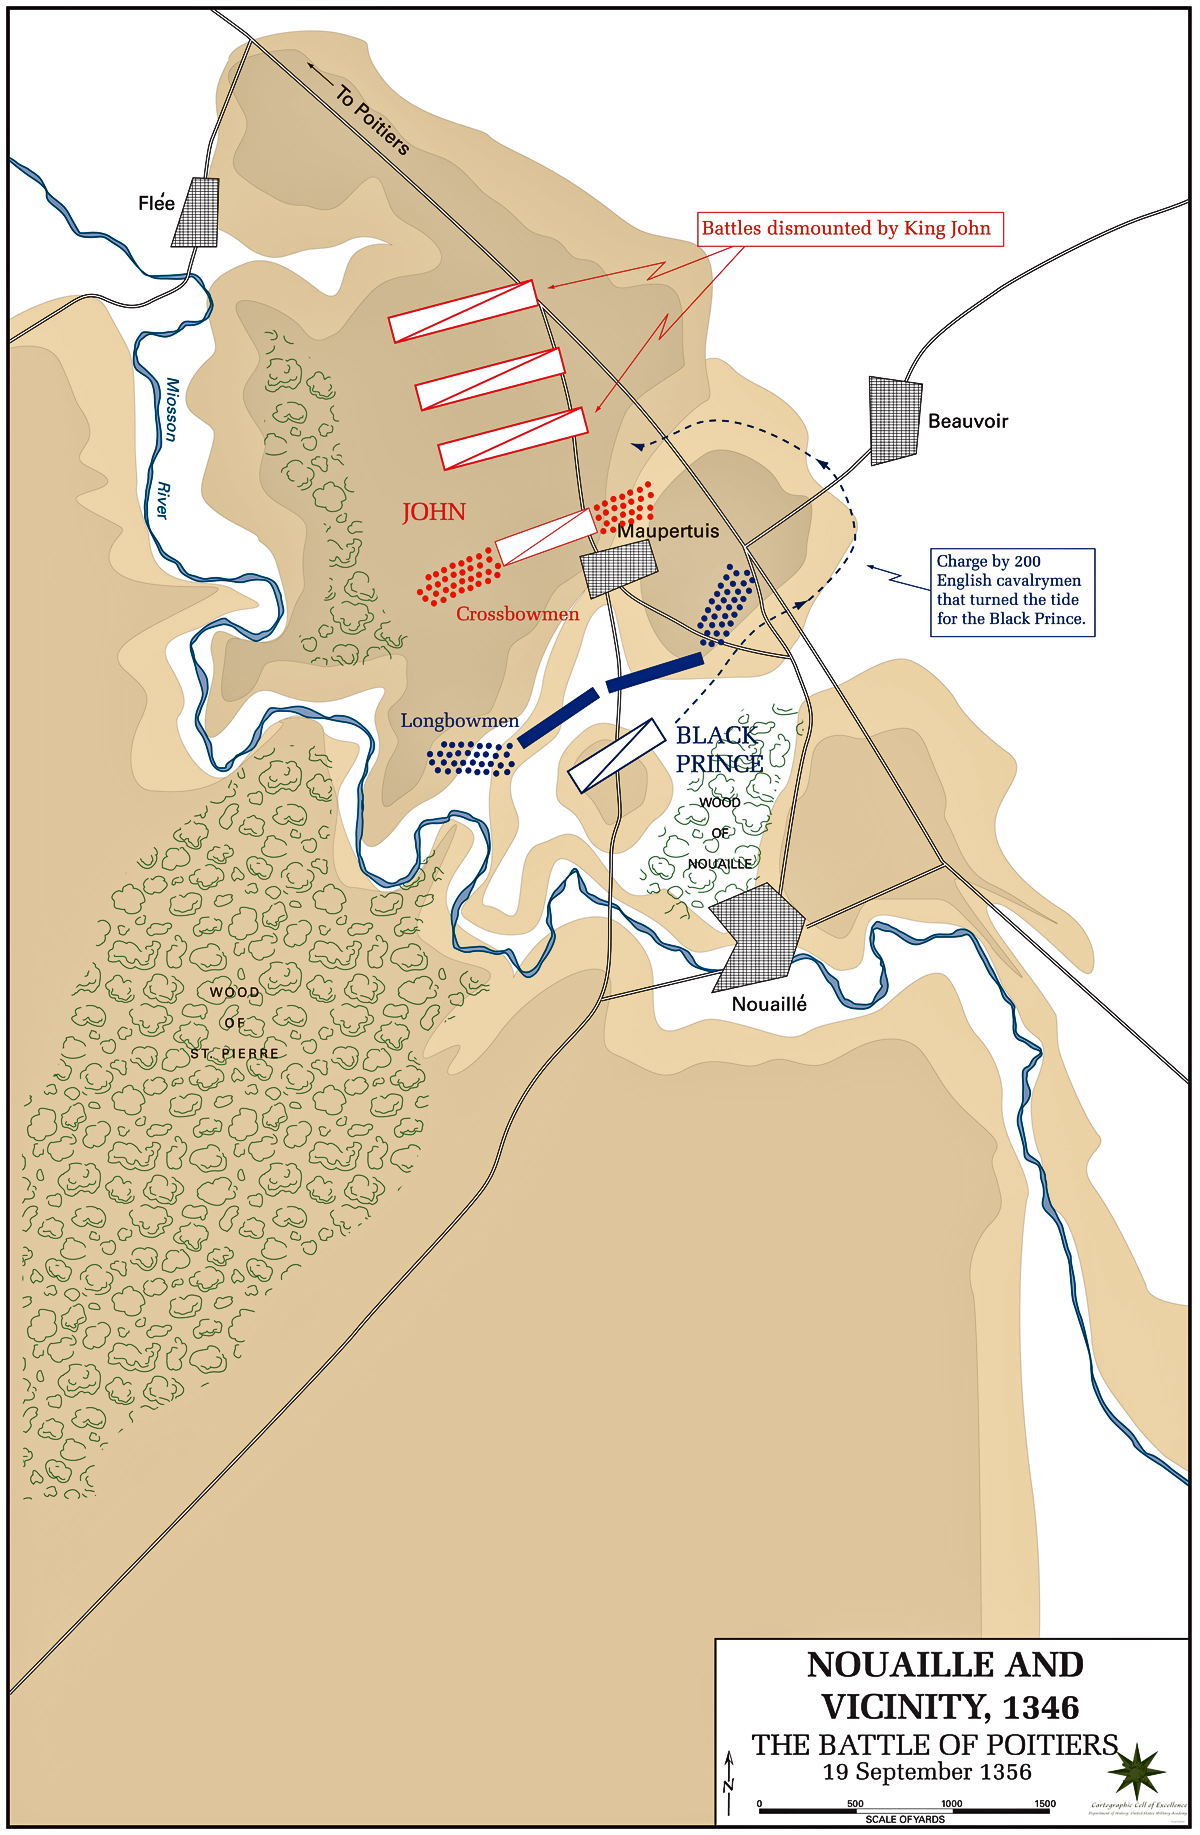 Map of the Battle of Poitiers - September 19, 1356